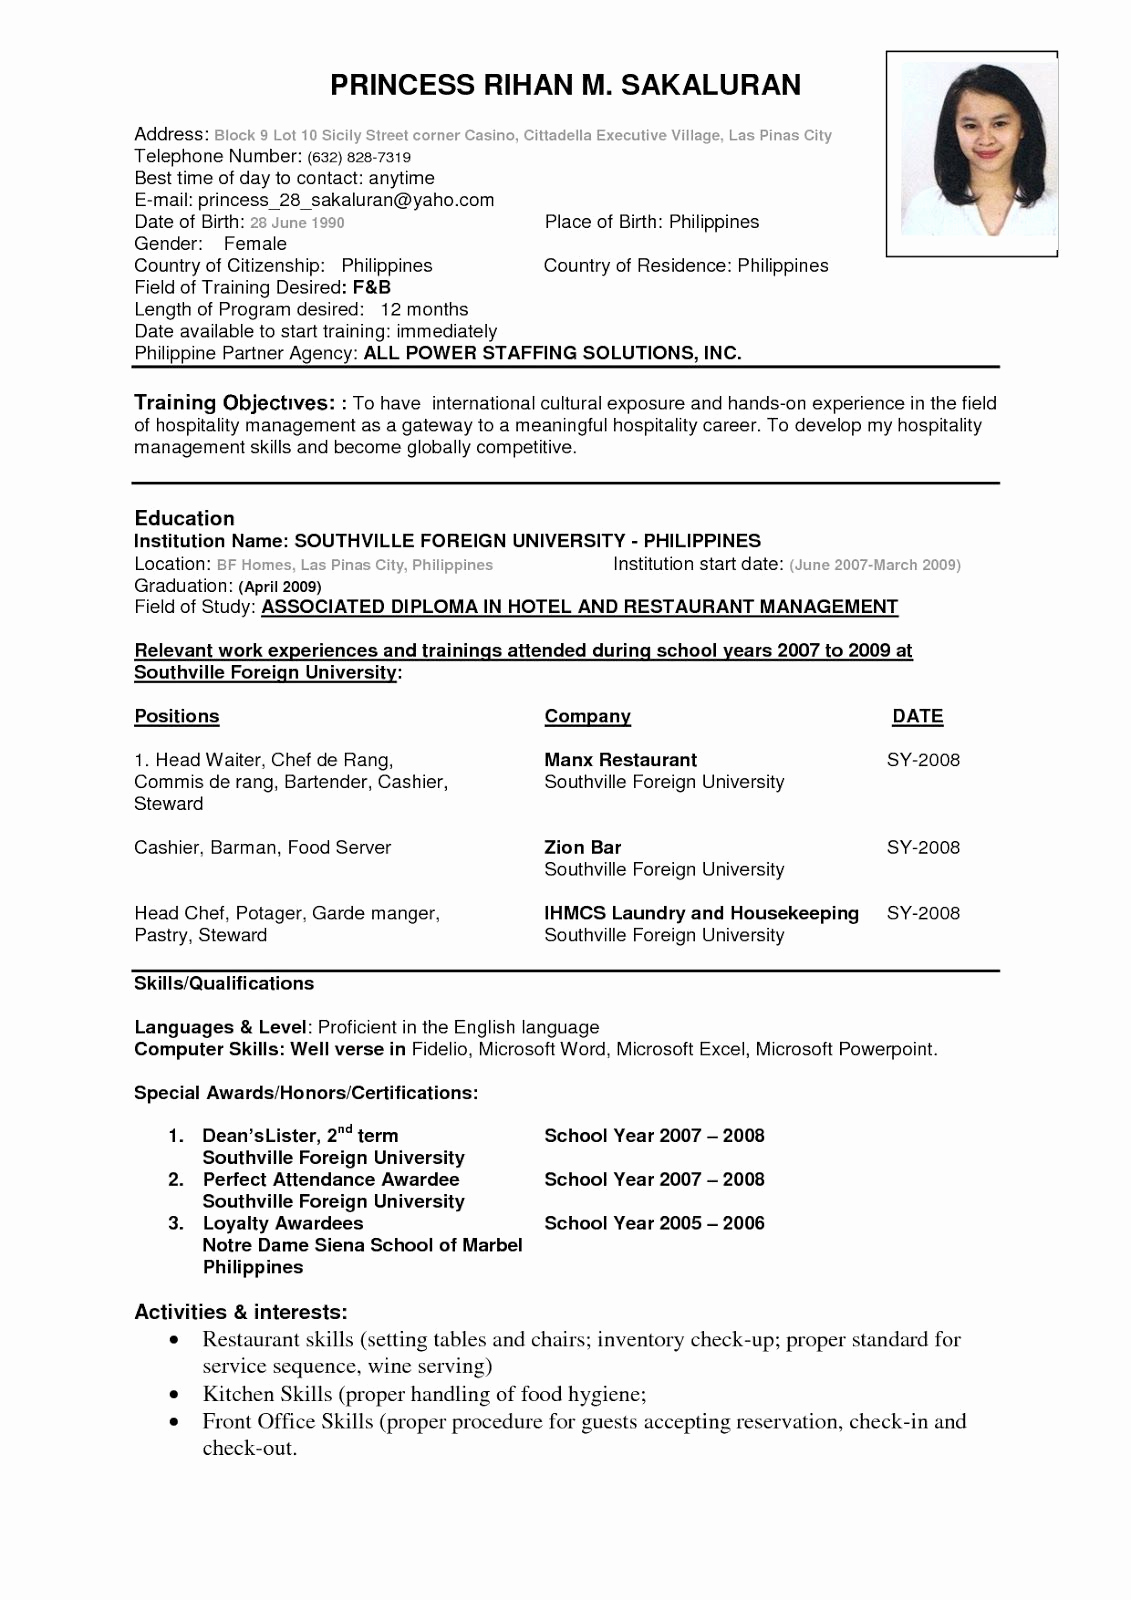 Free Resume Templates Pdf Lovely Resume Samples Pdf Sample Resumes Knowledge